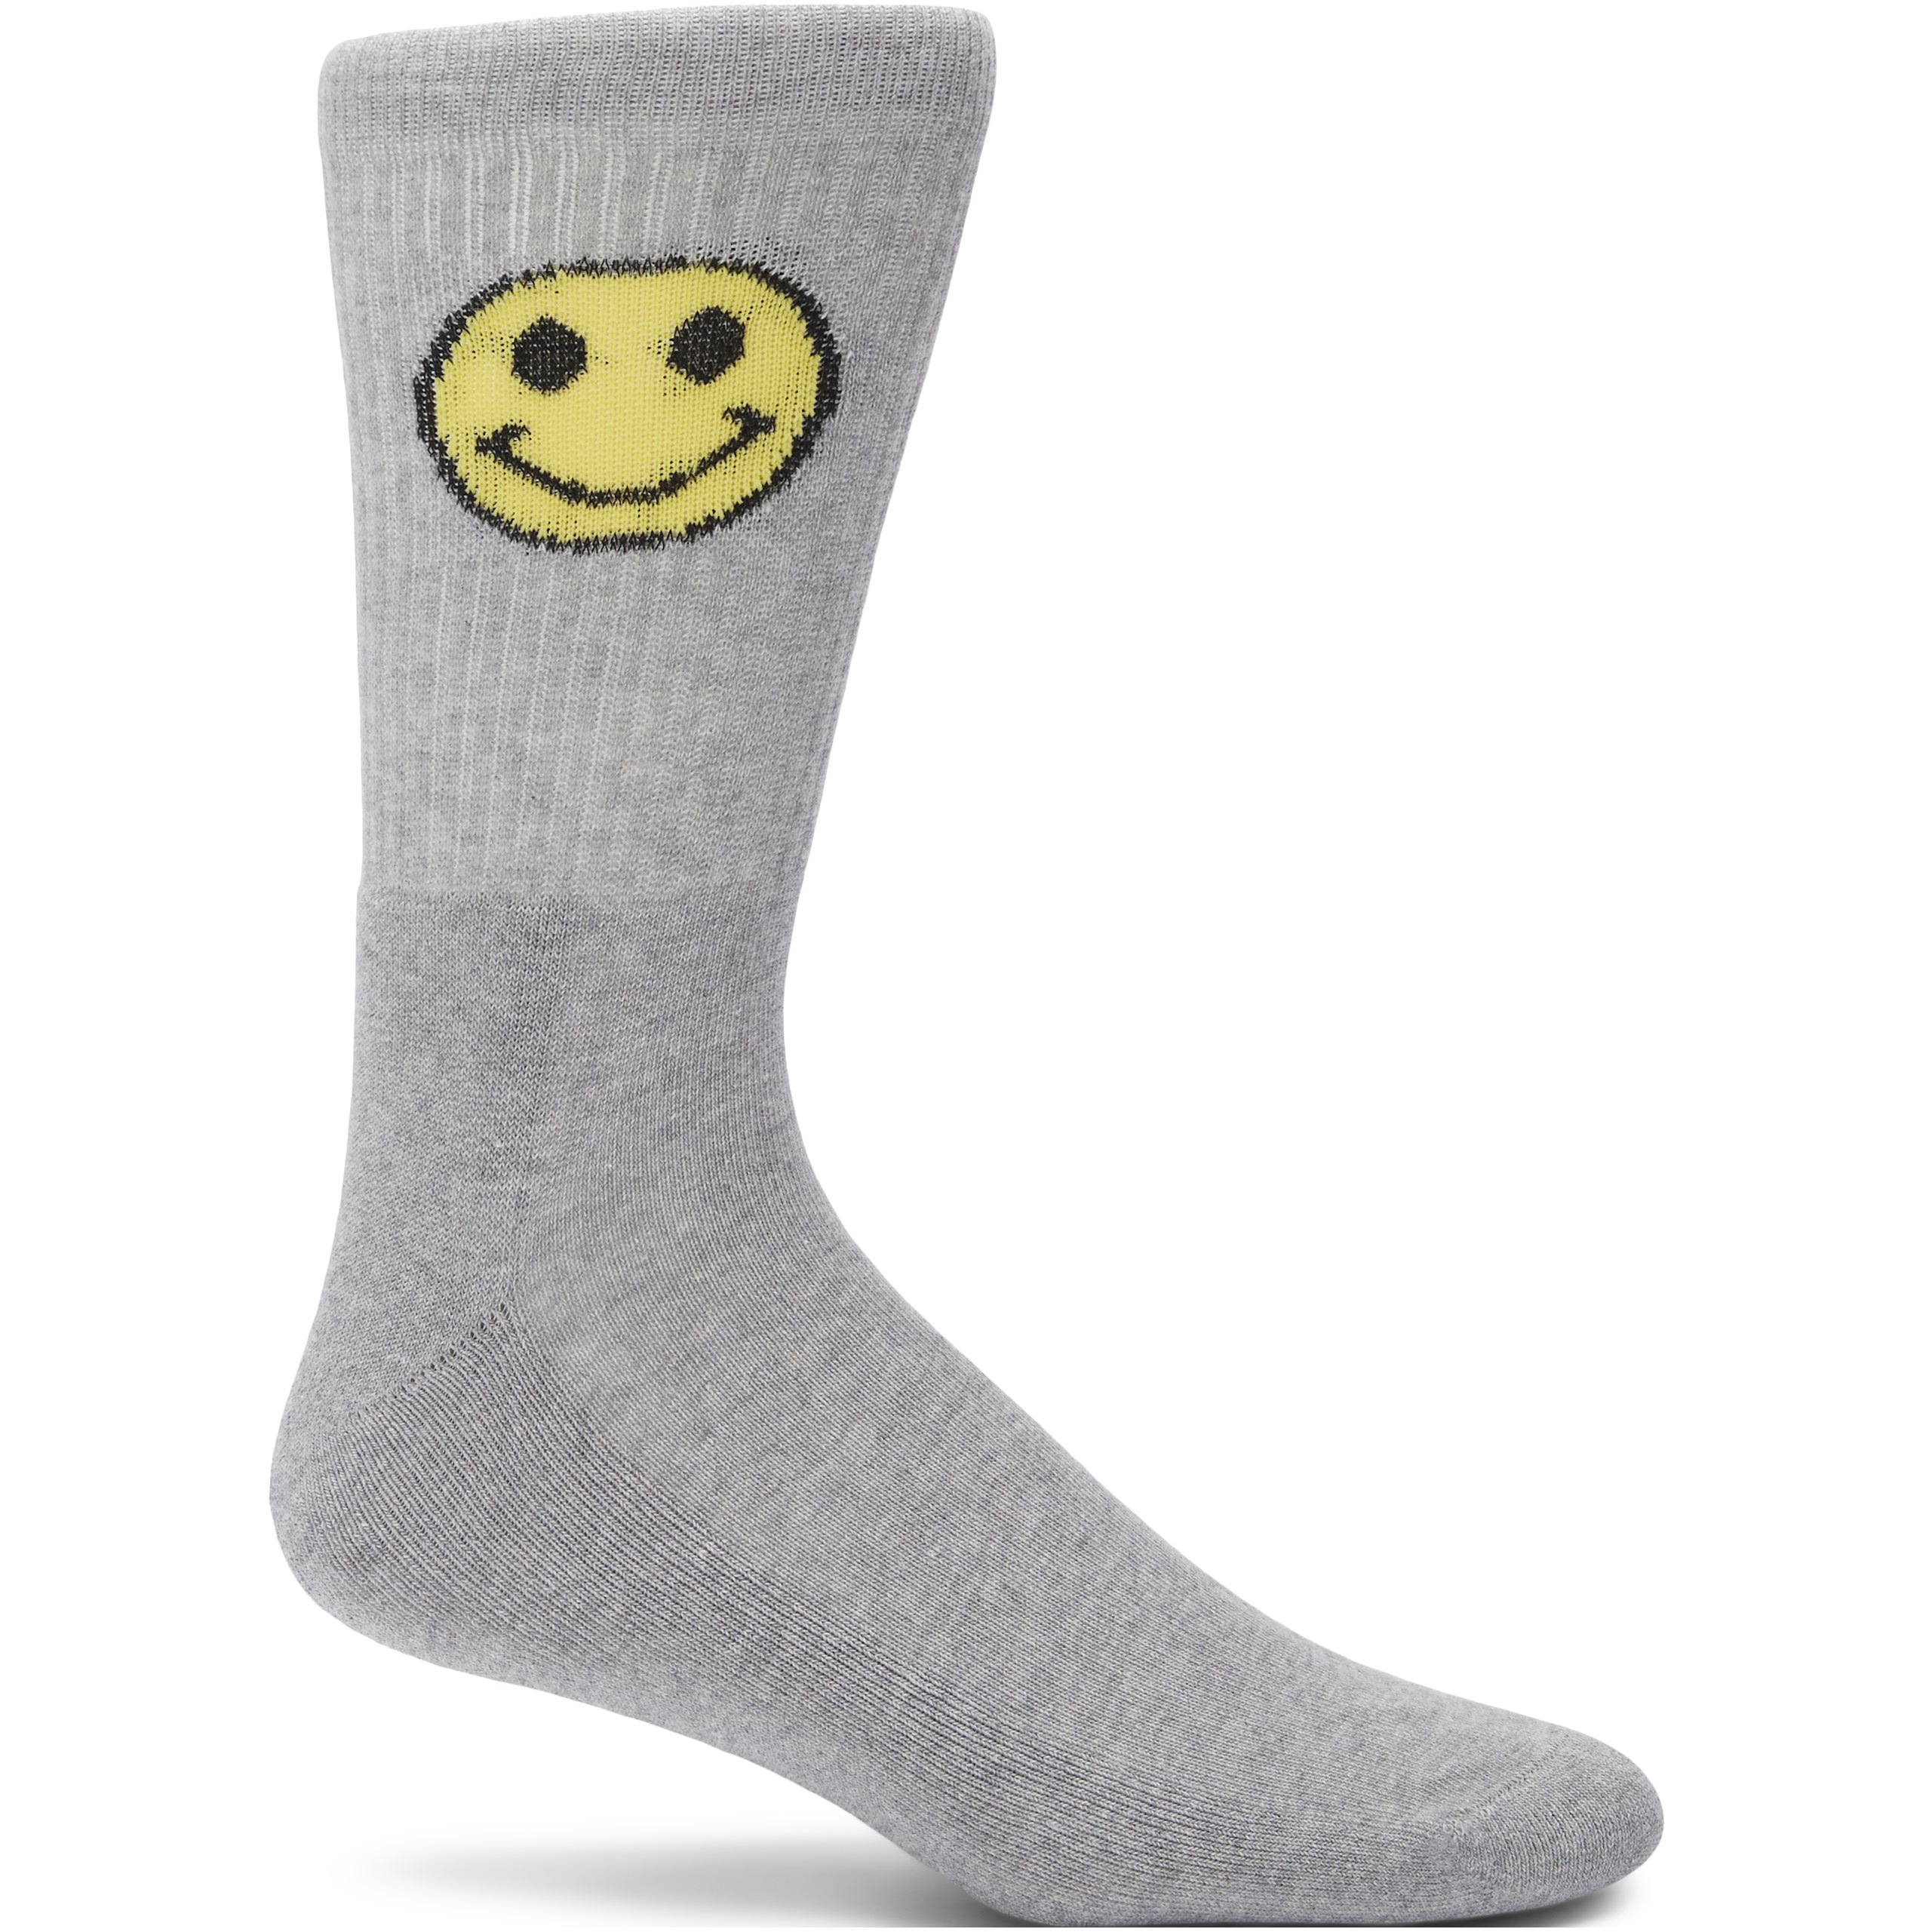 1-Pack Face Tennis Socks - Strømper - Grå